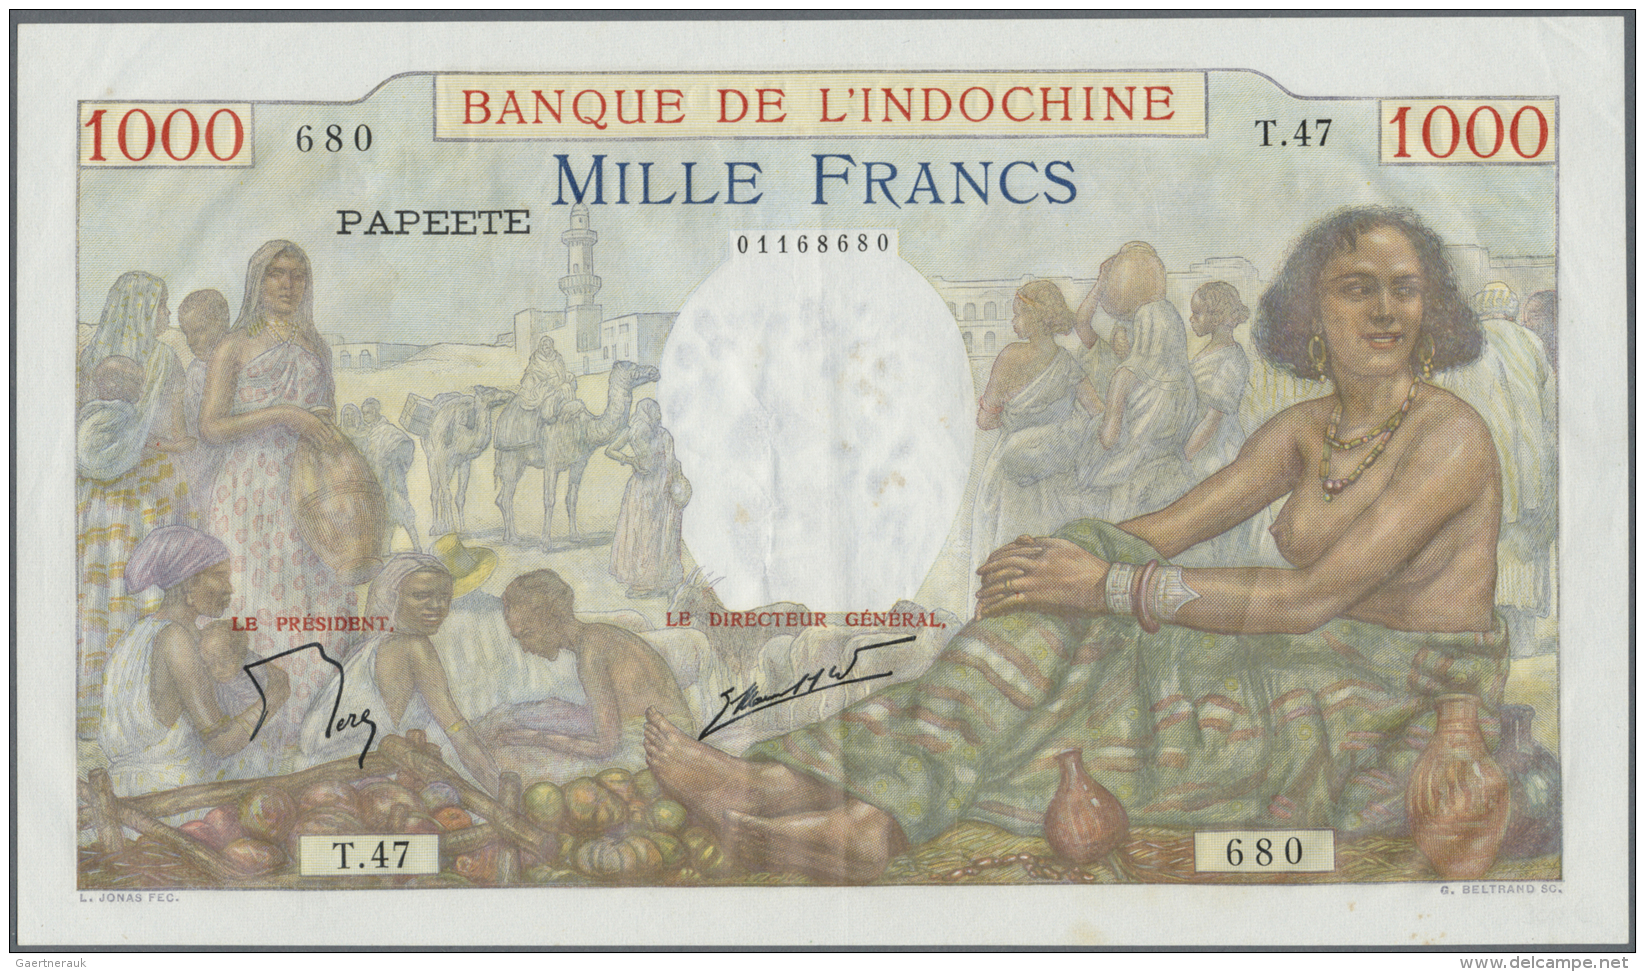 Tahiti: 1000 Francs ND(1940-57) P. 15 In Exceptional Condition For This Type Of Large Size Note, Very Crisp Original, Br - Banknotes